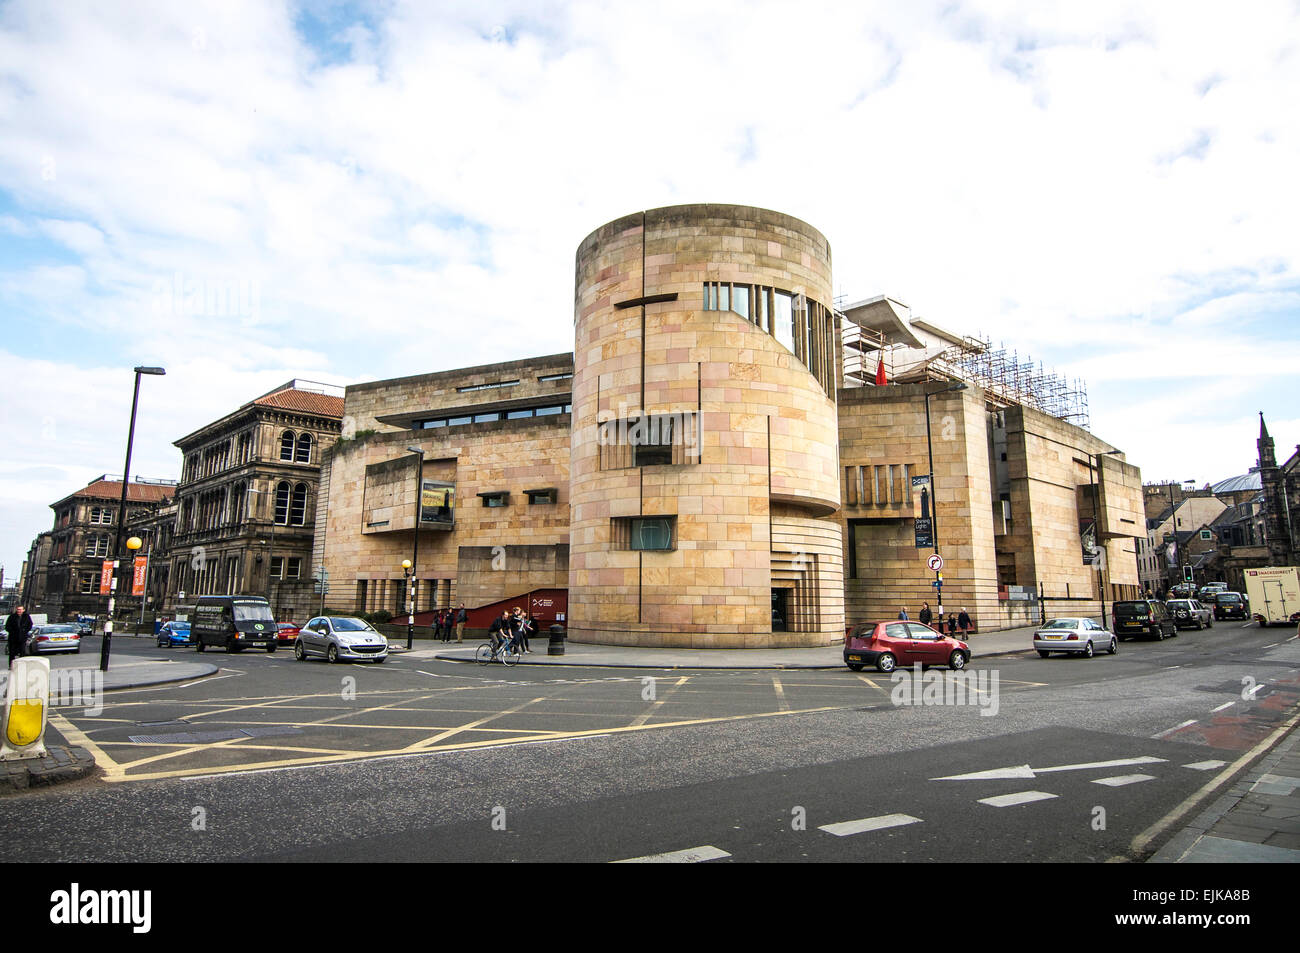 Exterior view of the National Museum of Scotland in Edinburgh. - Stock Image